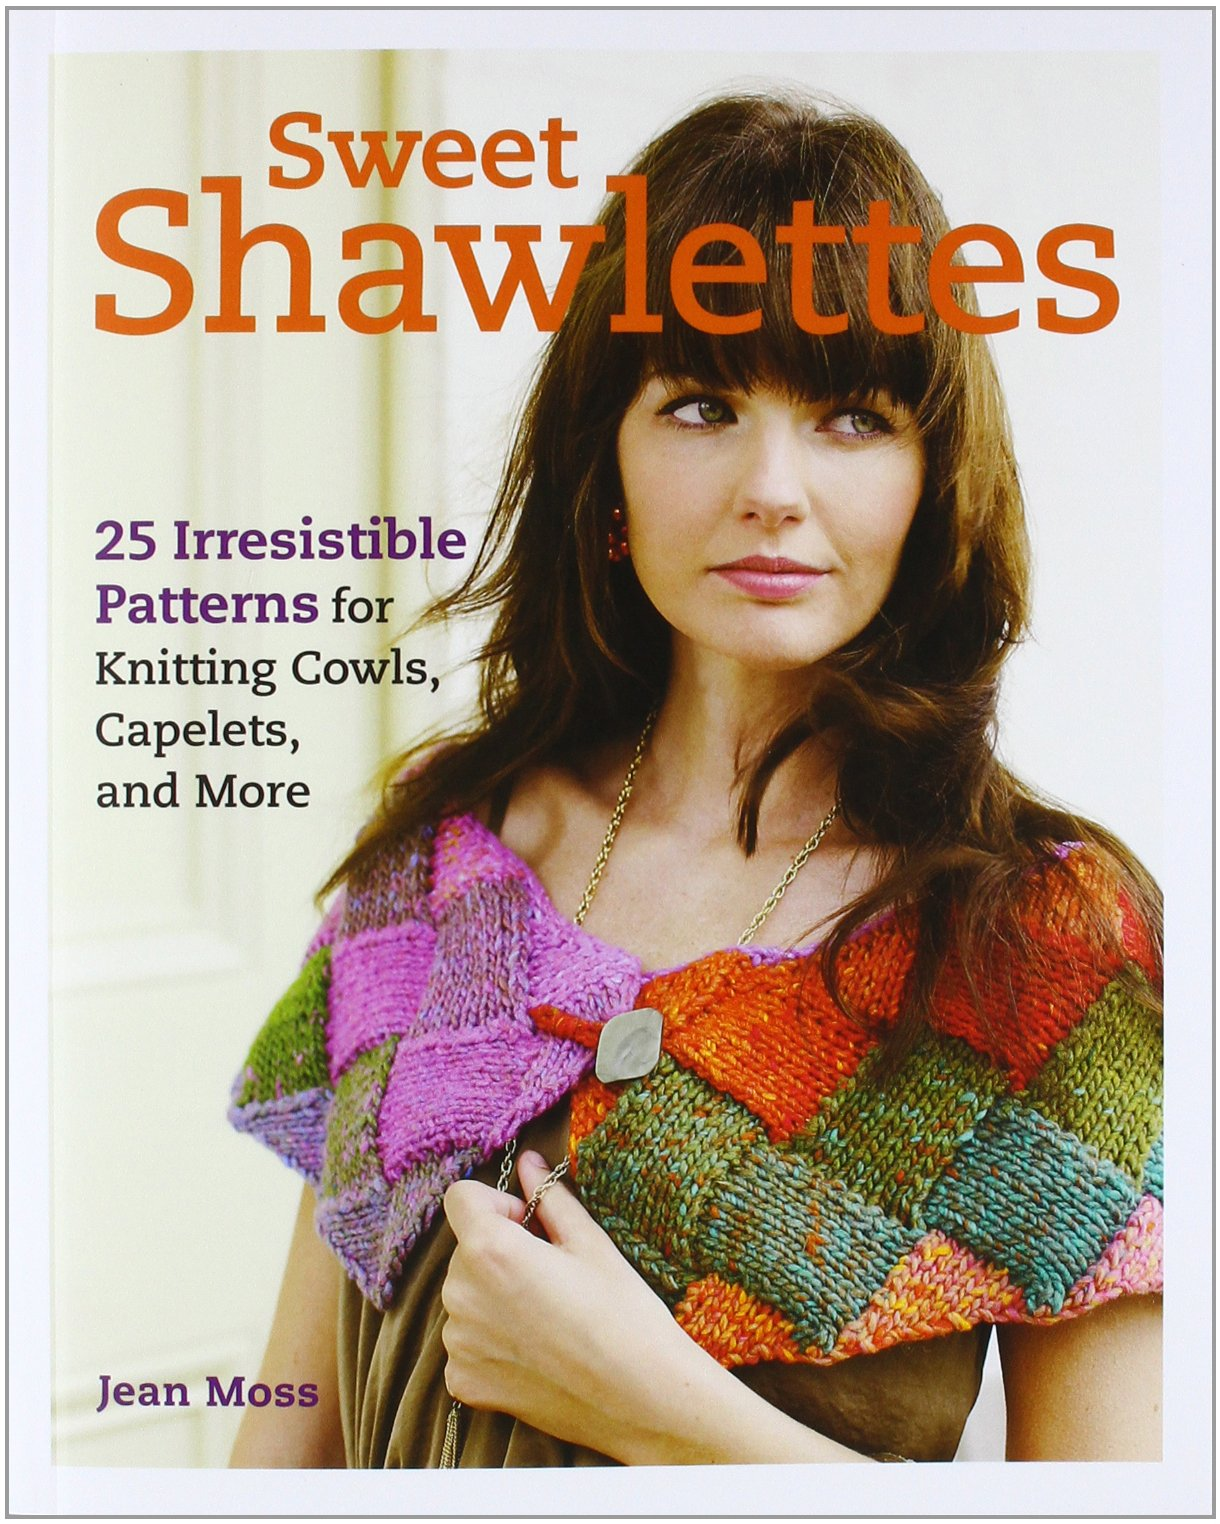 Sweet Shawlettes Irresistible Patterns Knitting